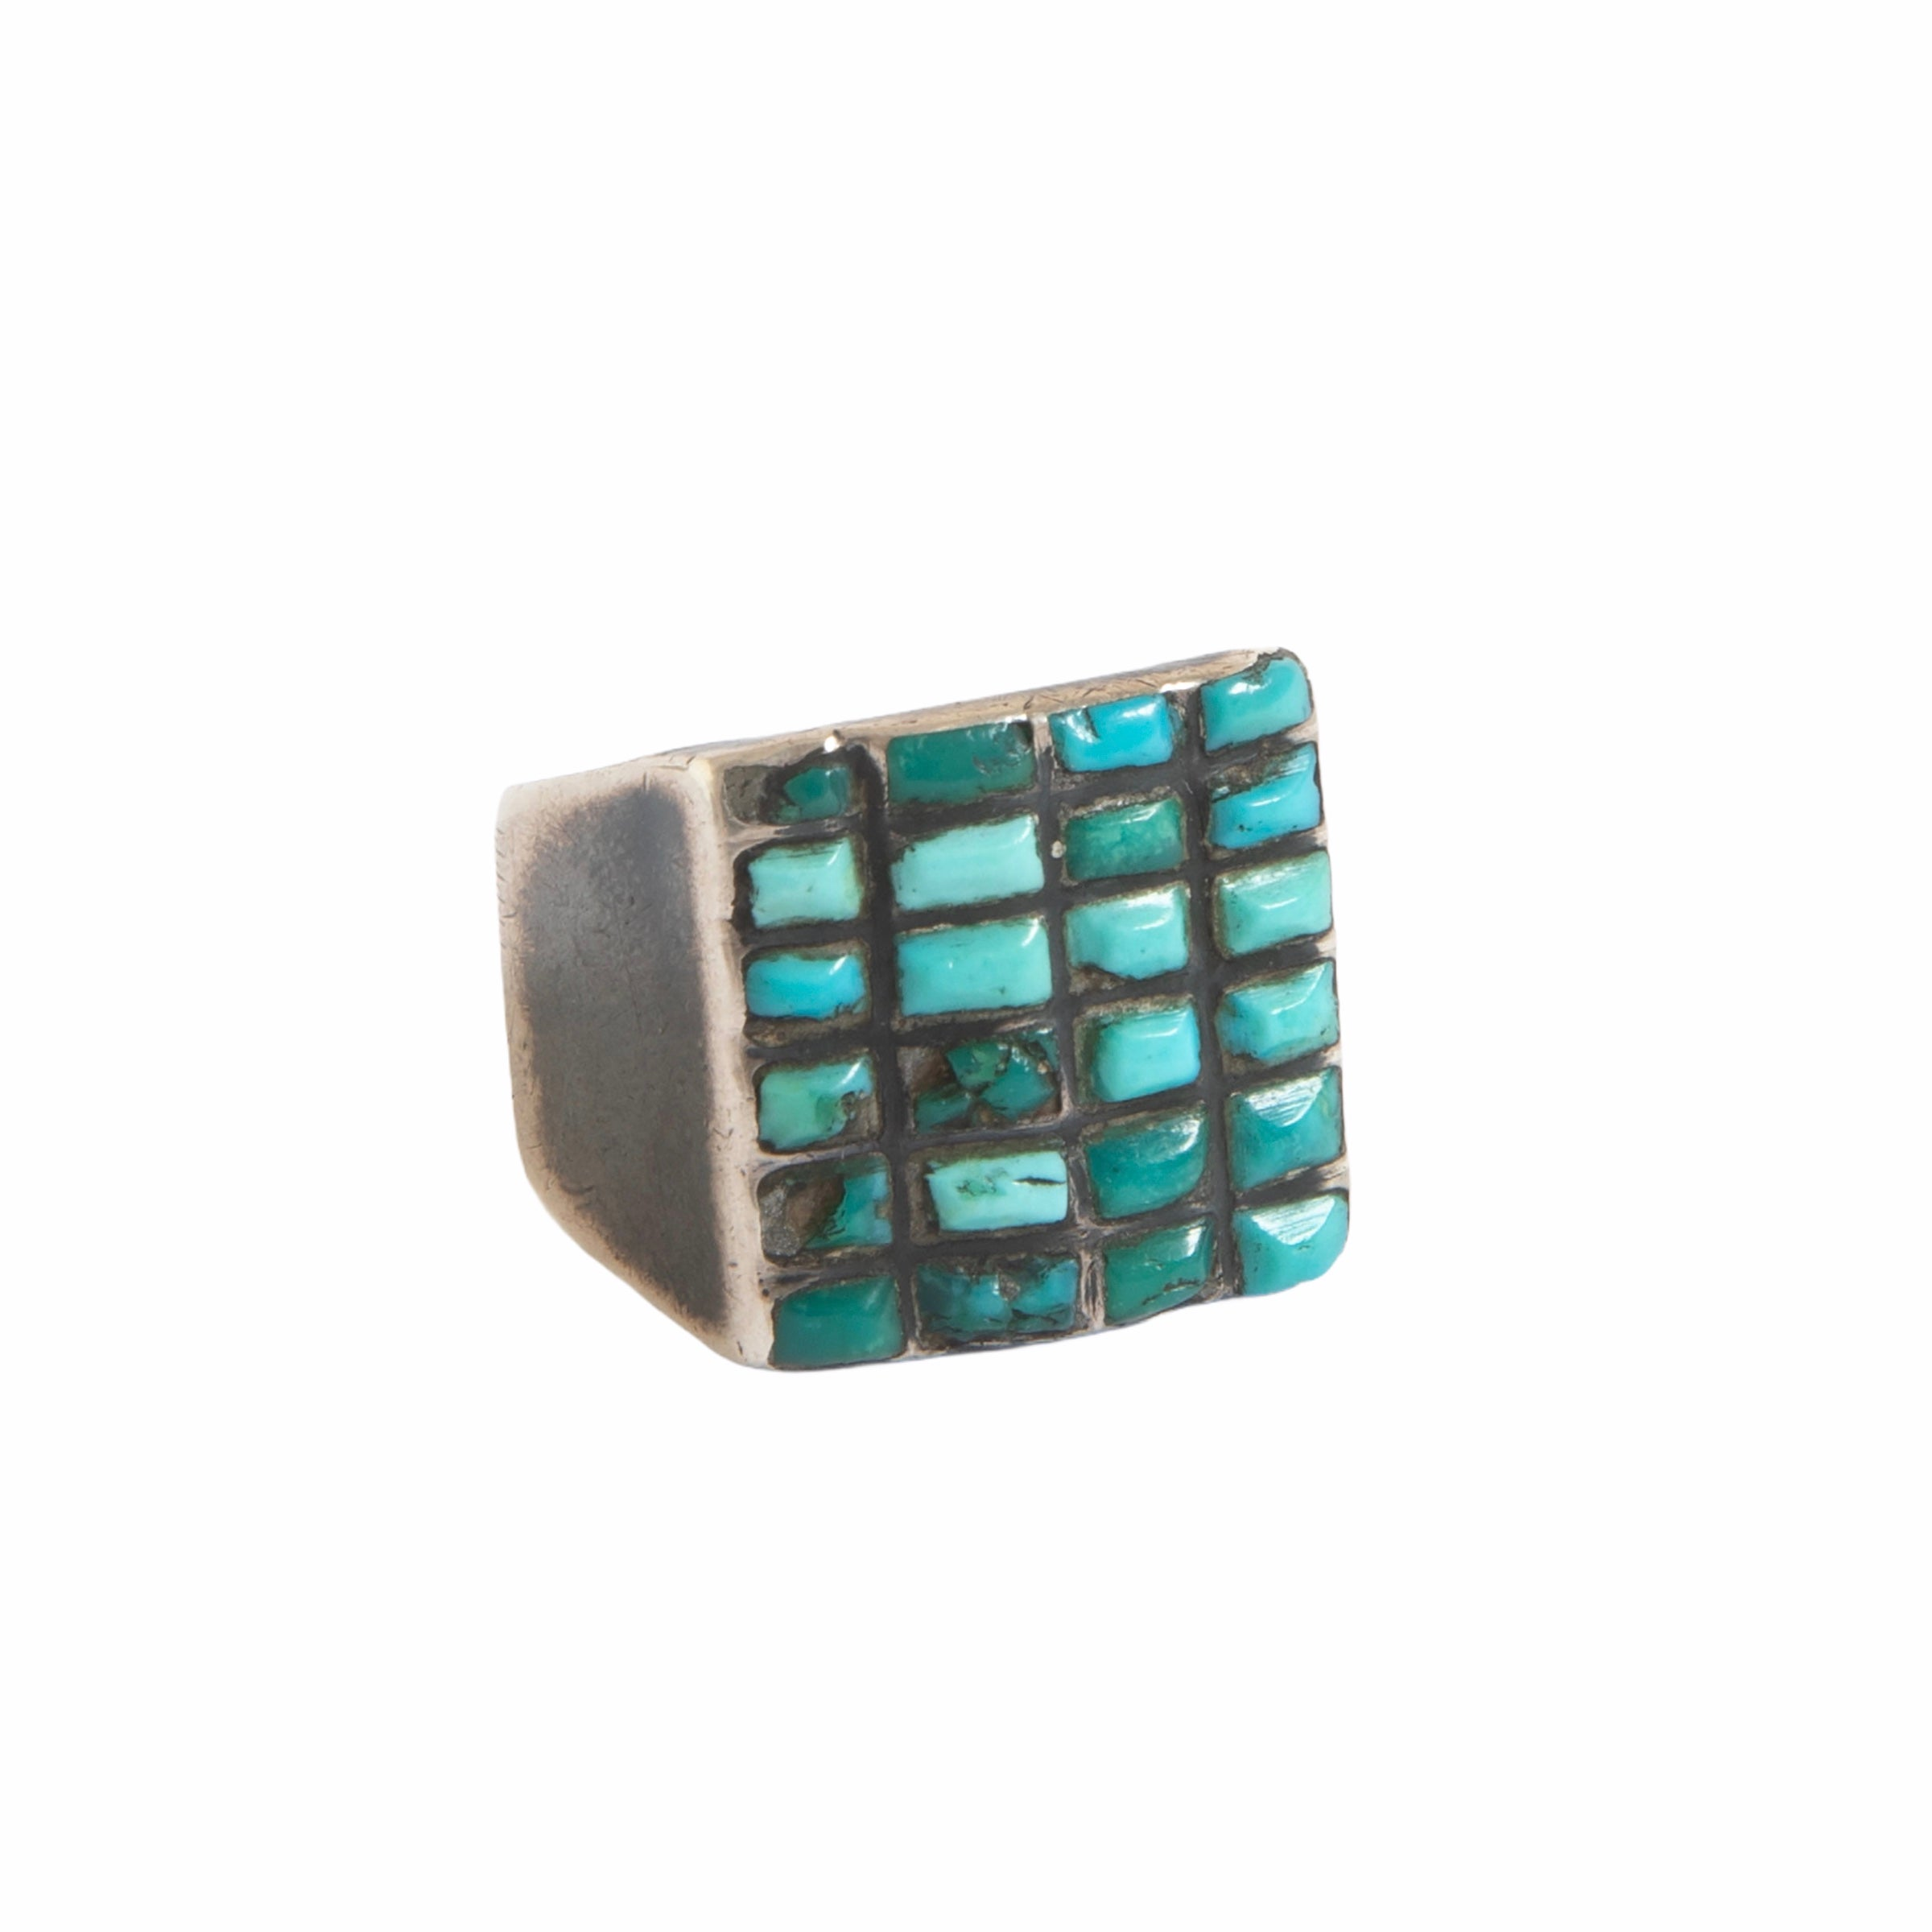 1950s Zuni Channel Cerrios Turquoise Ring - 6 Rows